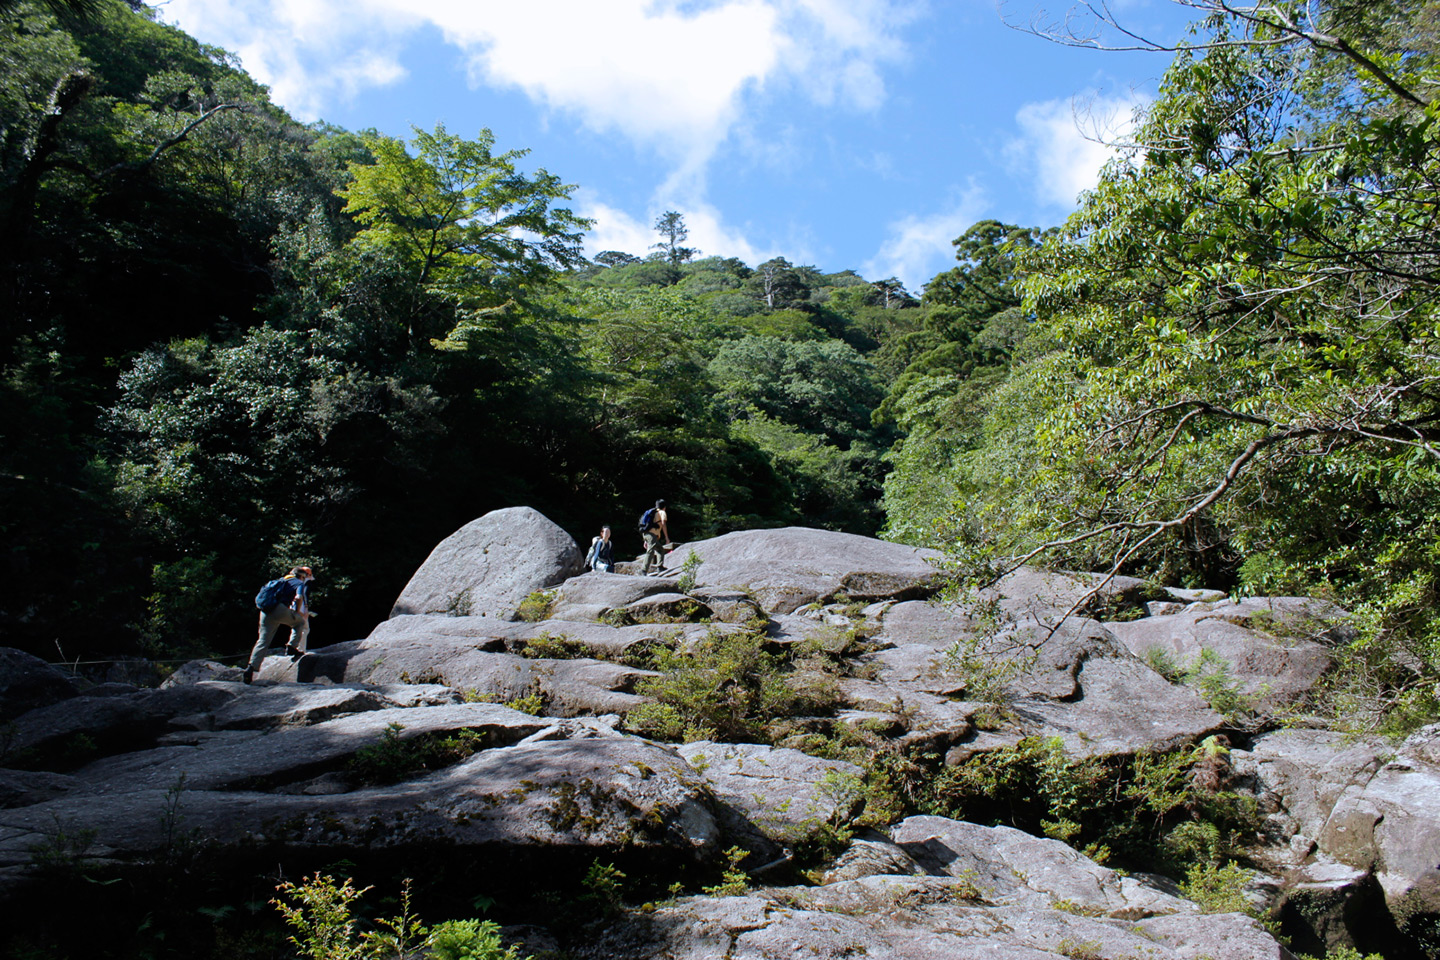 hiking on rocks in Japanese forest